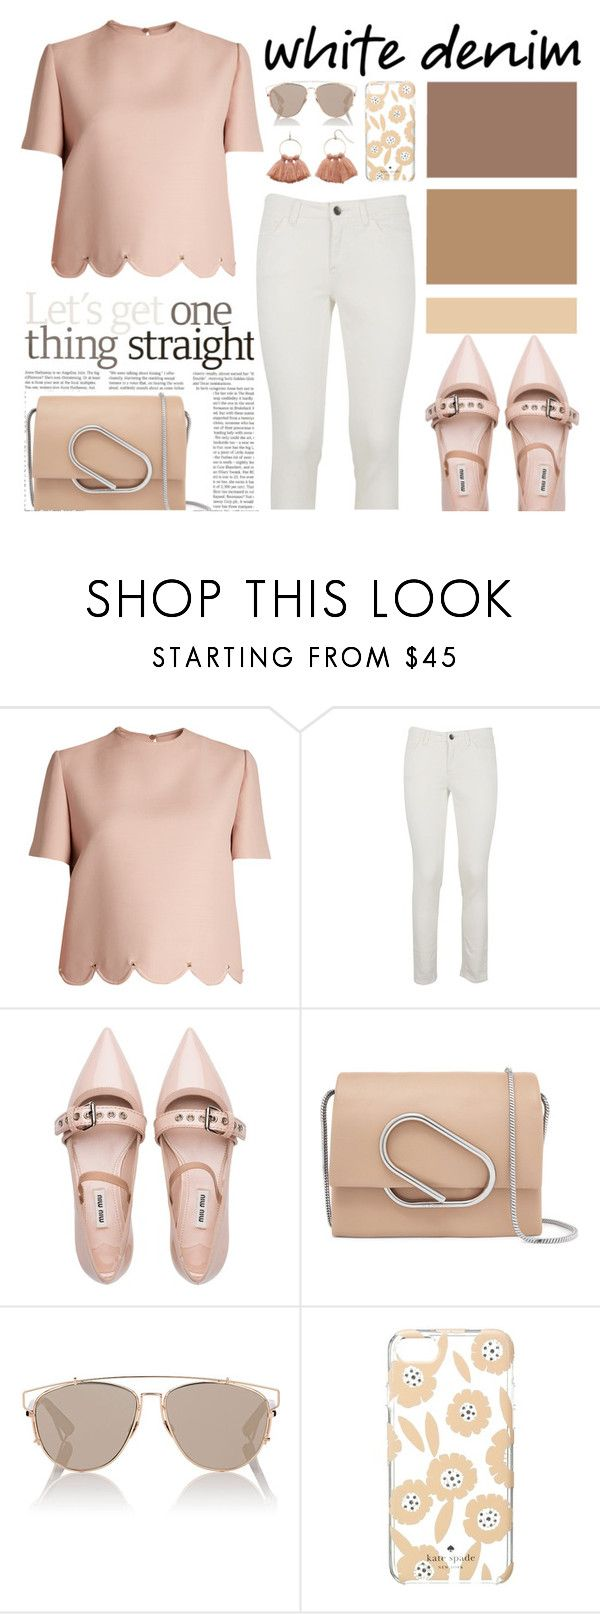 """""""Bright White: Summer Denim"""" by nadiahirbah288 ❤ liked on Polyvore featuring Valentino, Dolce&Gabbana, Miu Miu, 3.1 Phillip Lim, Christian Dior, Kate Spade and LC Lauren Conrad"""